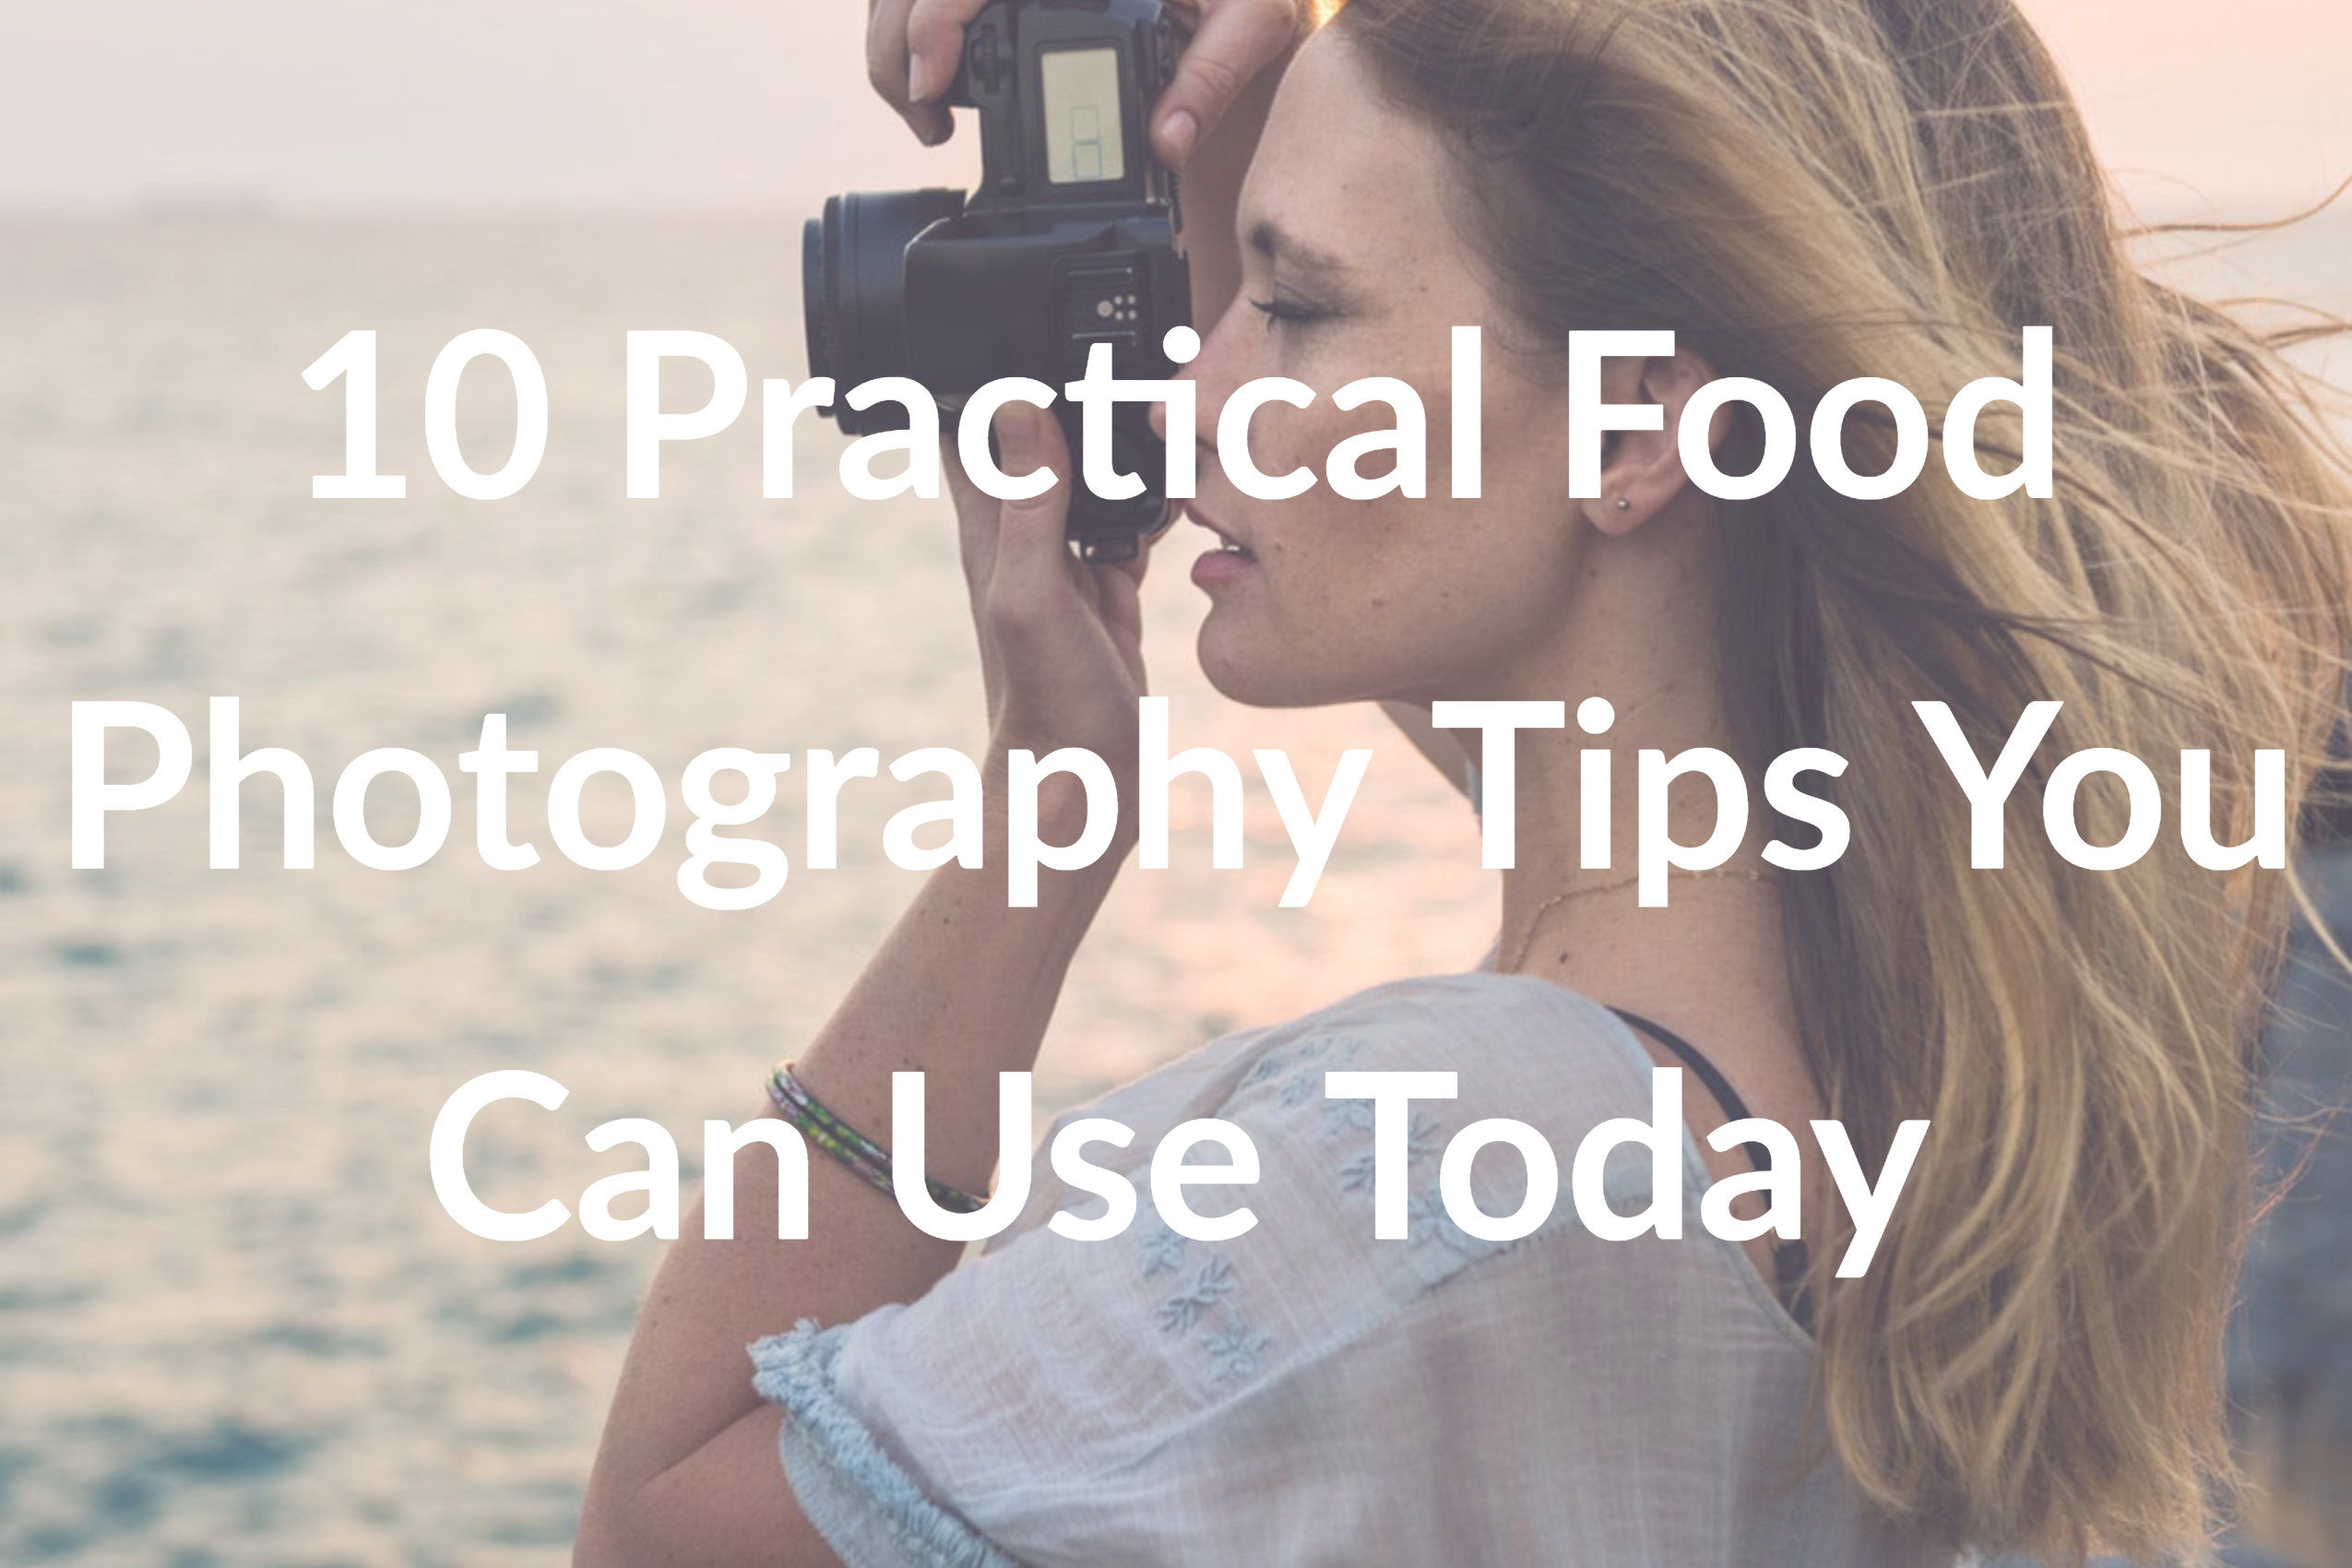 10 Practical Food Photography Tips You Can Use Today